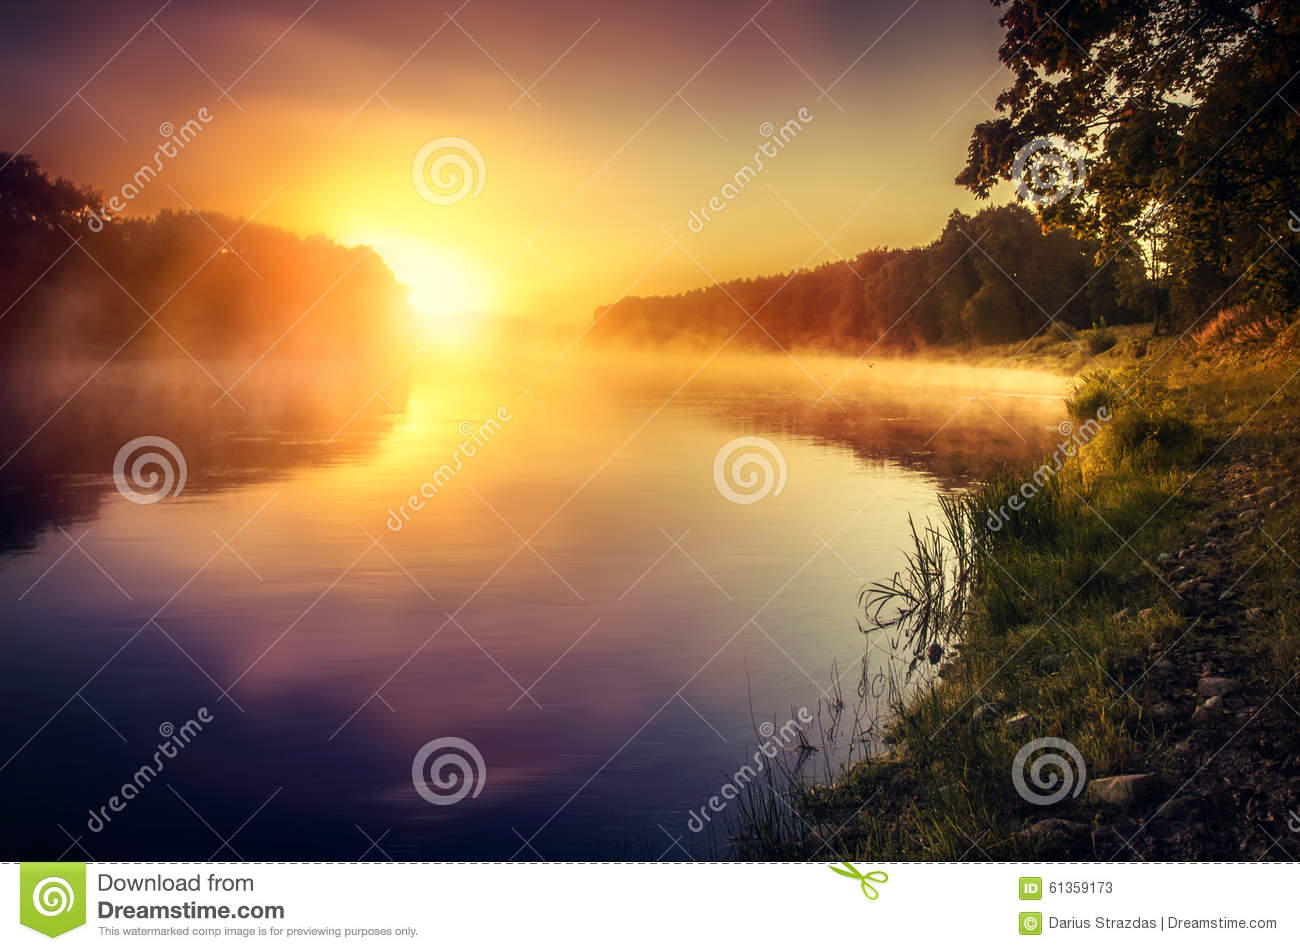 Download Misty Sunrise Over The River Stock Image - Image of nobody, baltic: 61359173